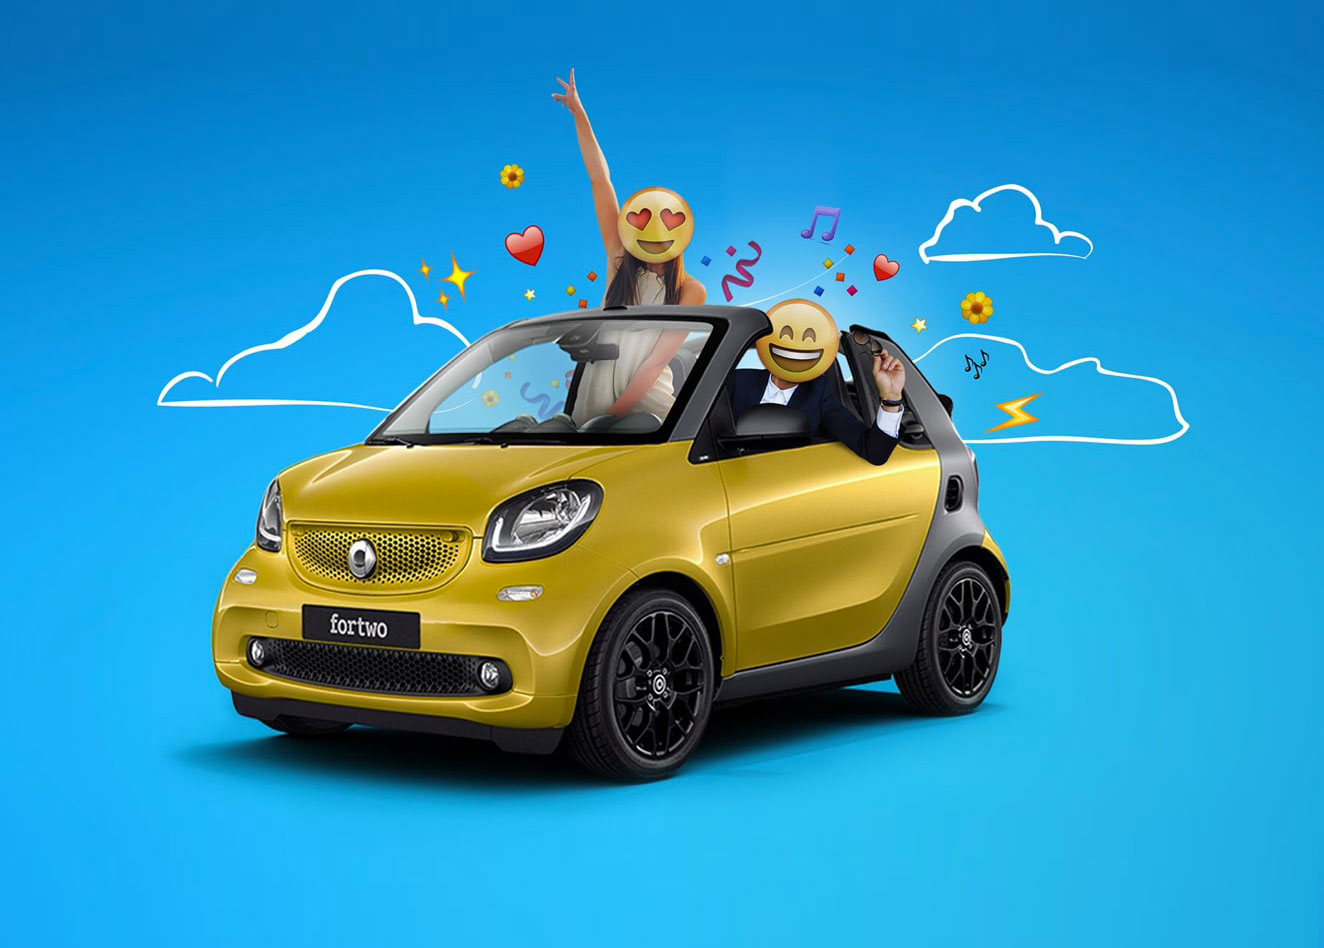 Automotive marketing strategies for Smart by Luther Dsgn agency